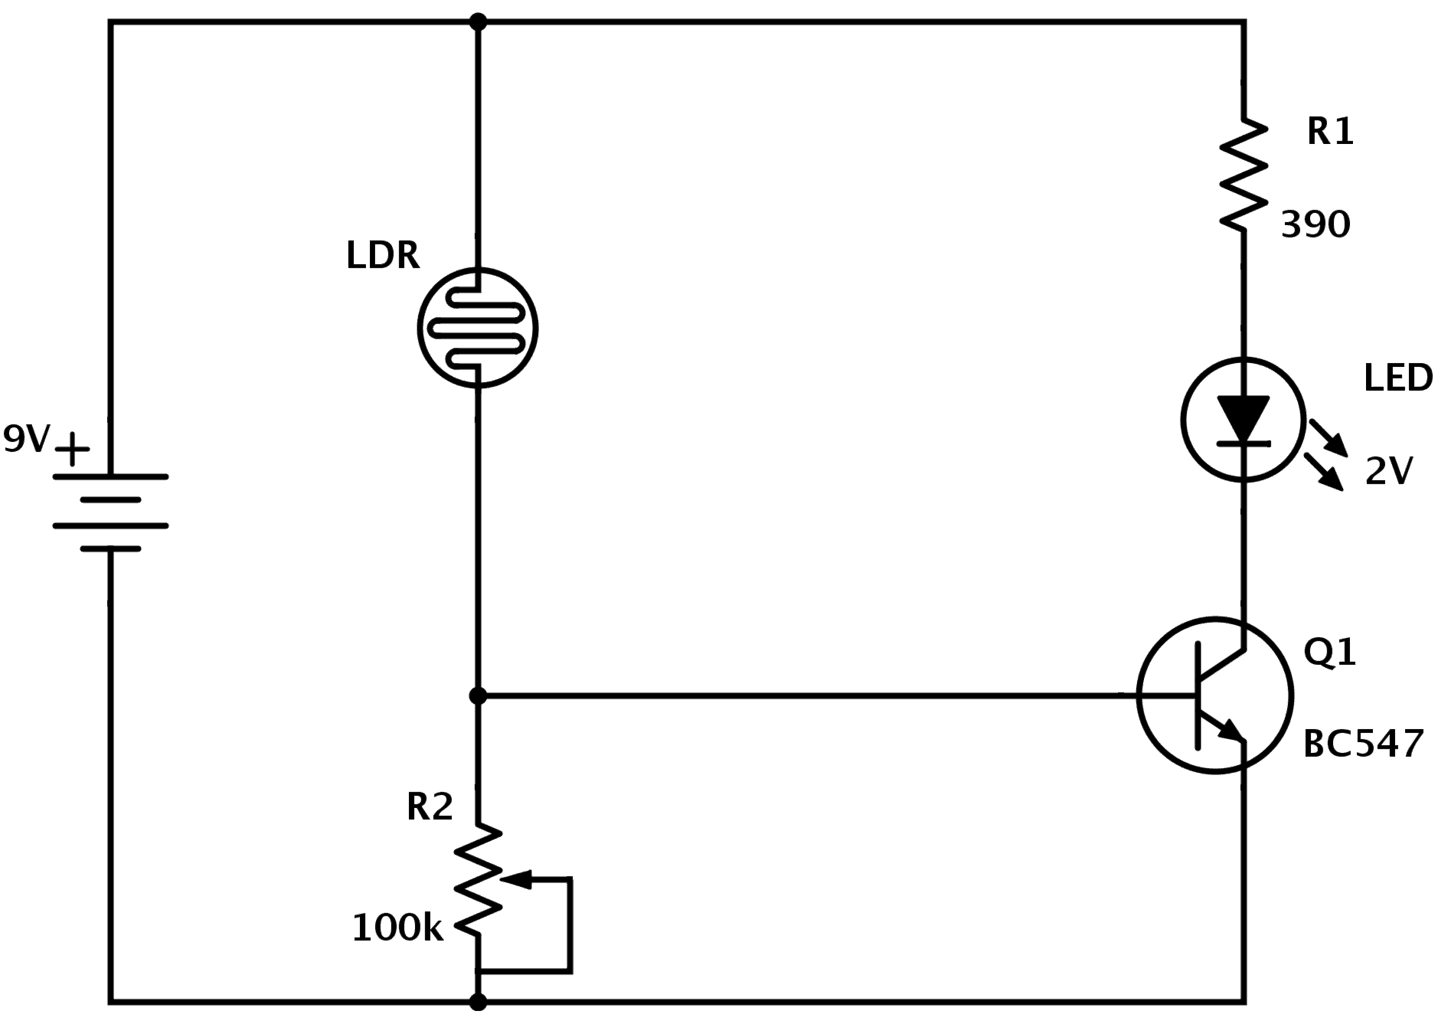 Circuit diagram how to read and understand any schematic Problem Scale Root Cause Diagram Distributor Wiring Diagram on block diagram practice problems